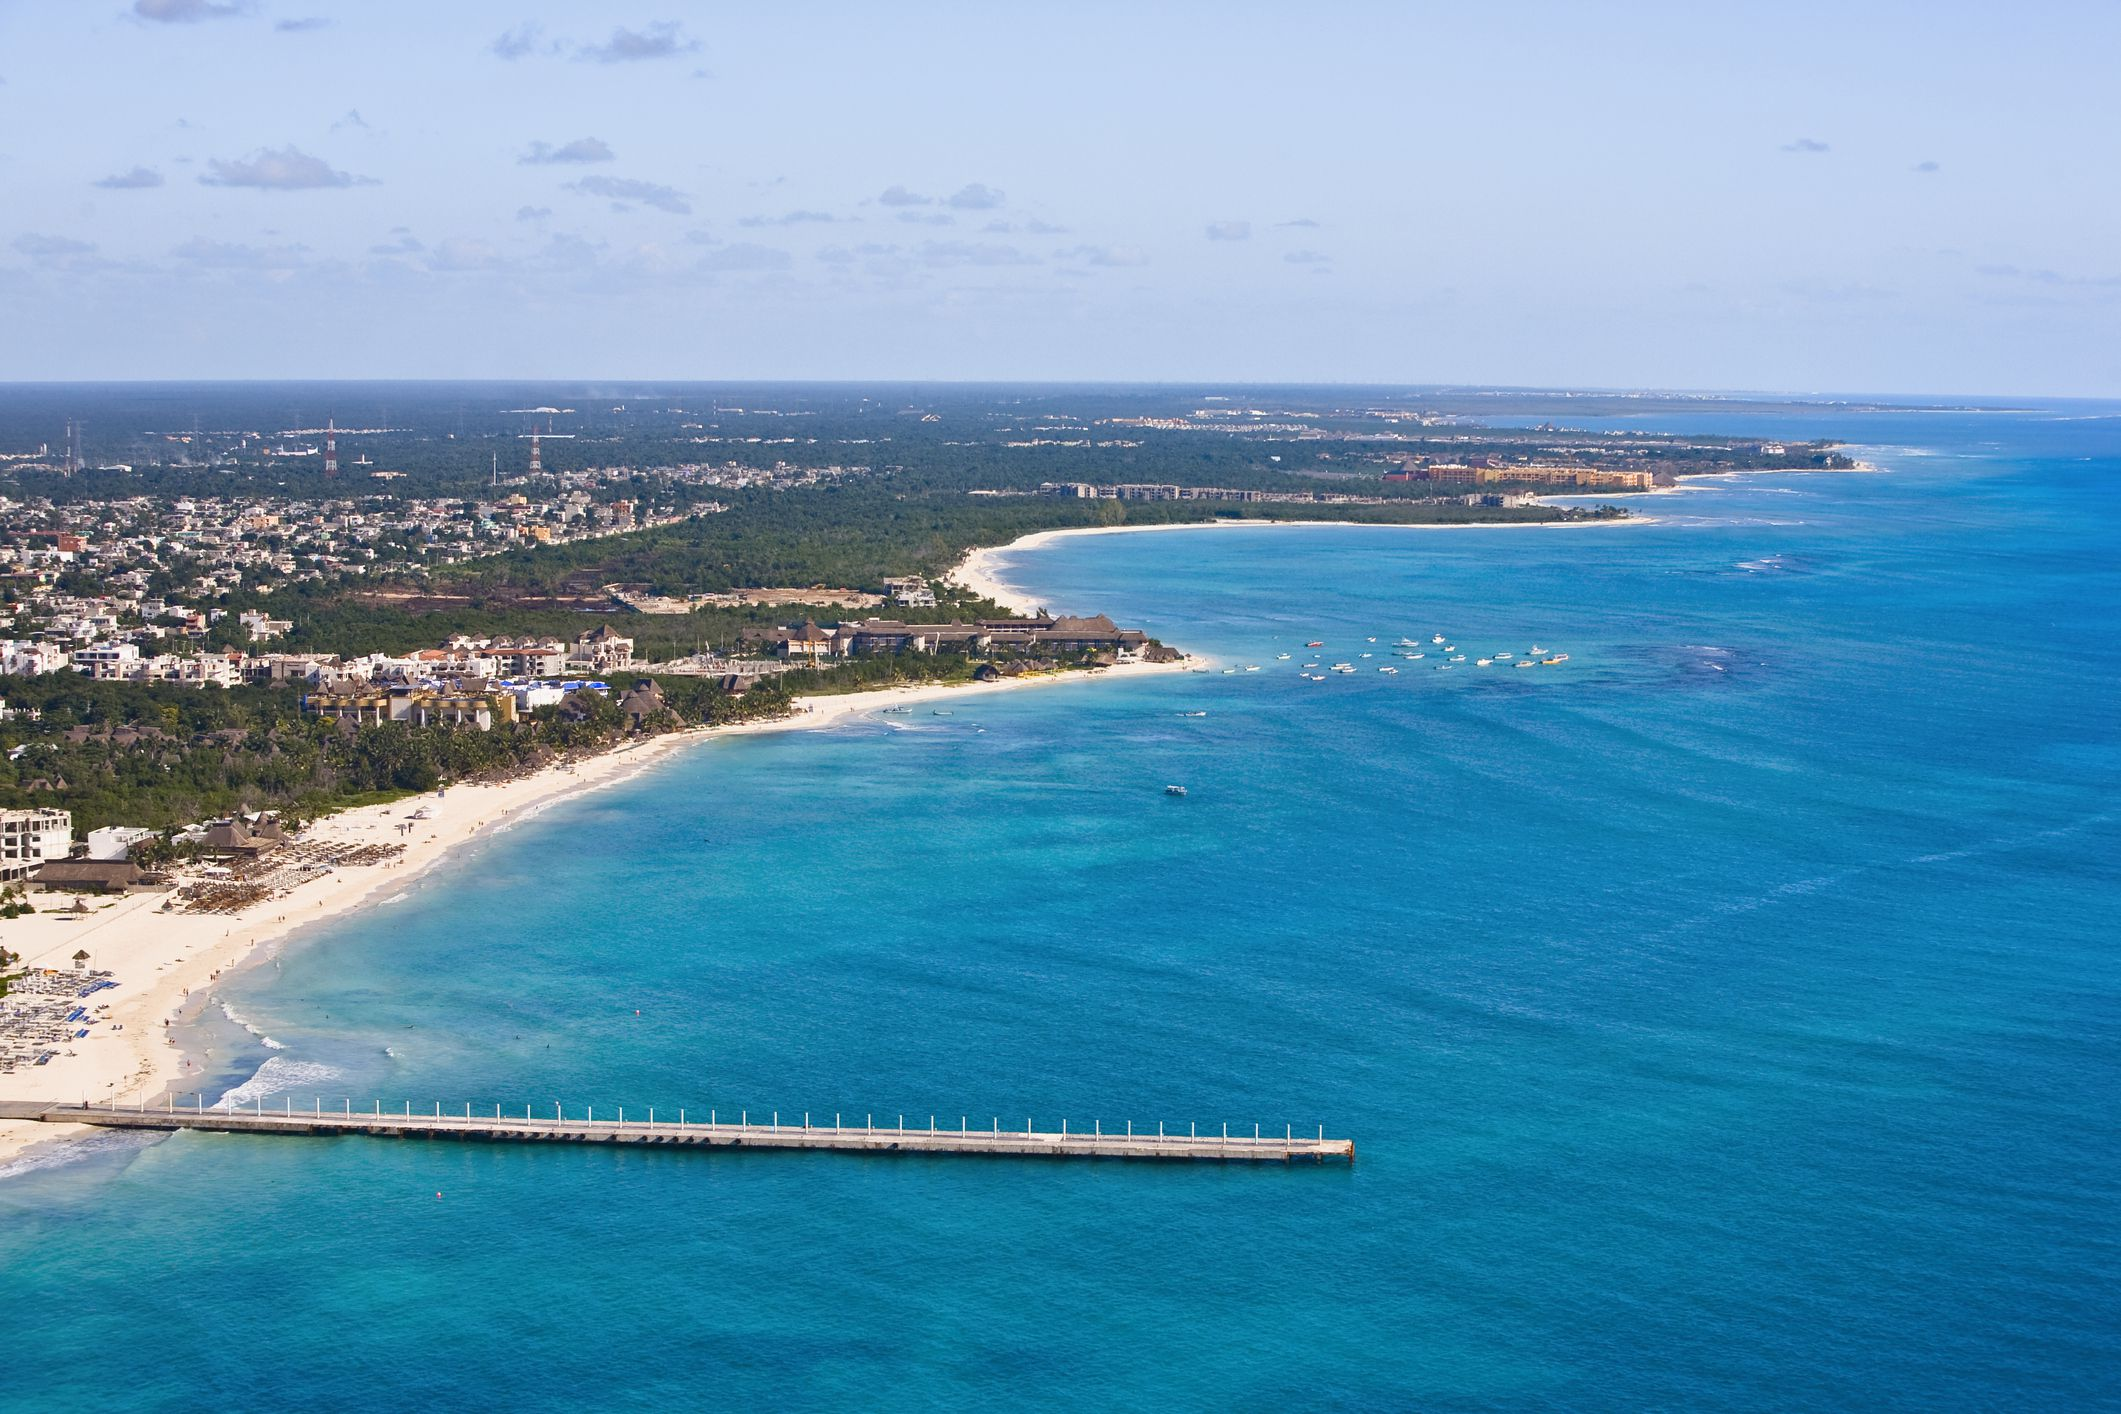 Top 10 Facts About The Yucatan Peninsula